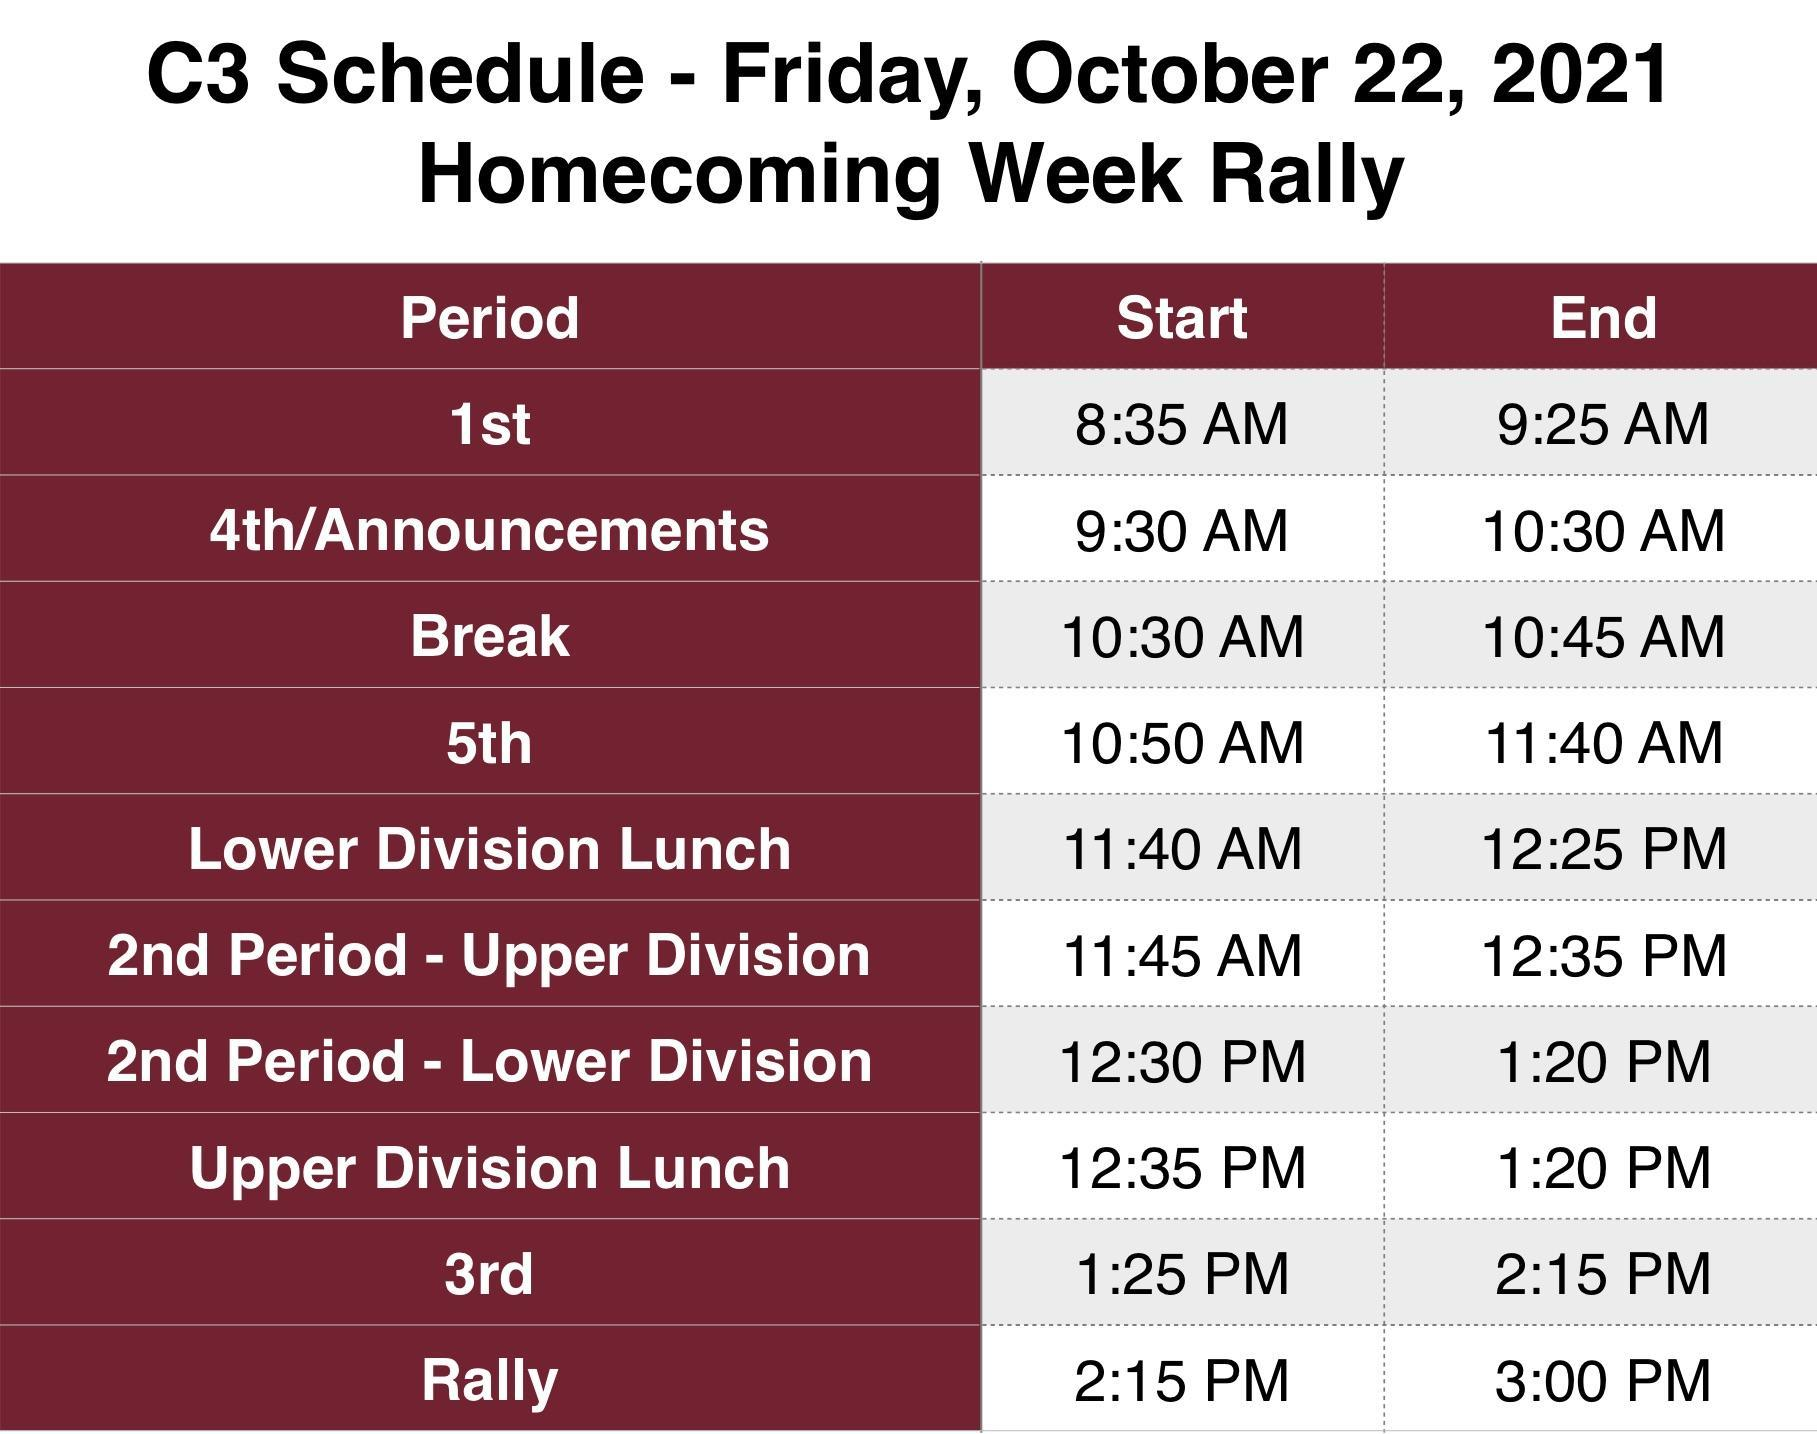 8:35 Start C3 Rotation with 50 Min Classes and Rally Friday October 22 2021